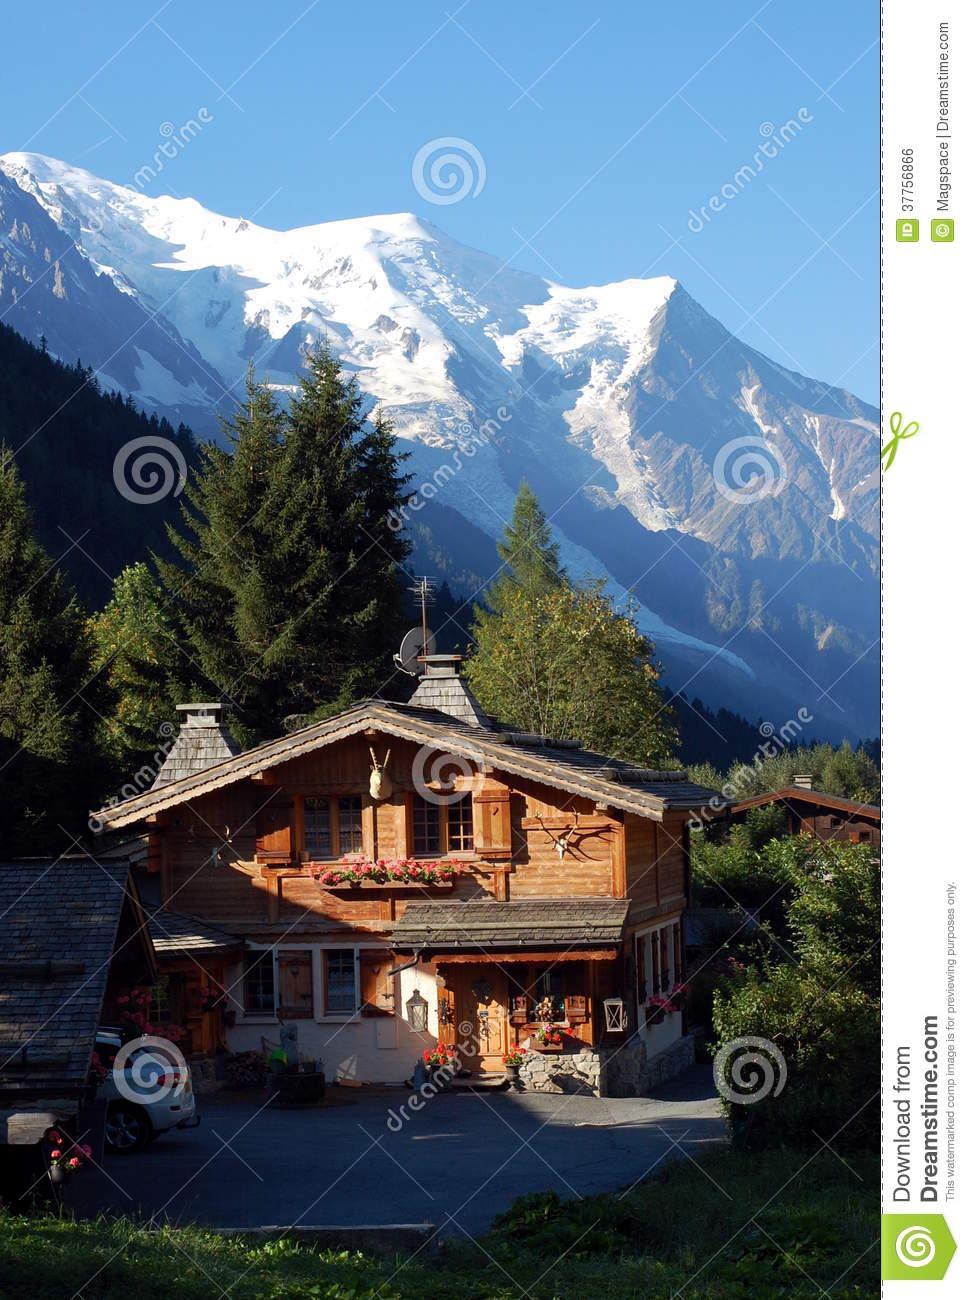 A Nice Wooden Mountain House Royalty Free Stock Image